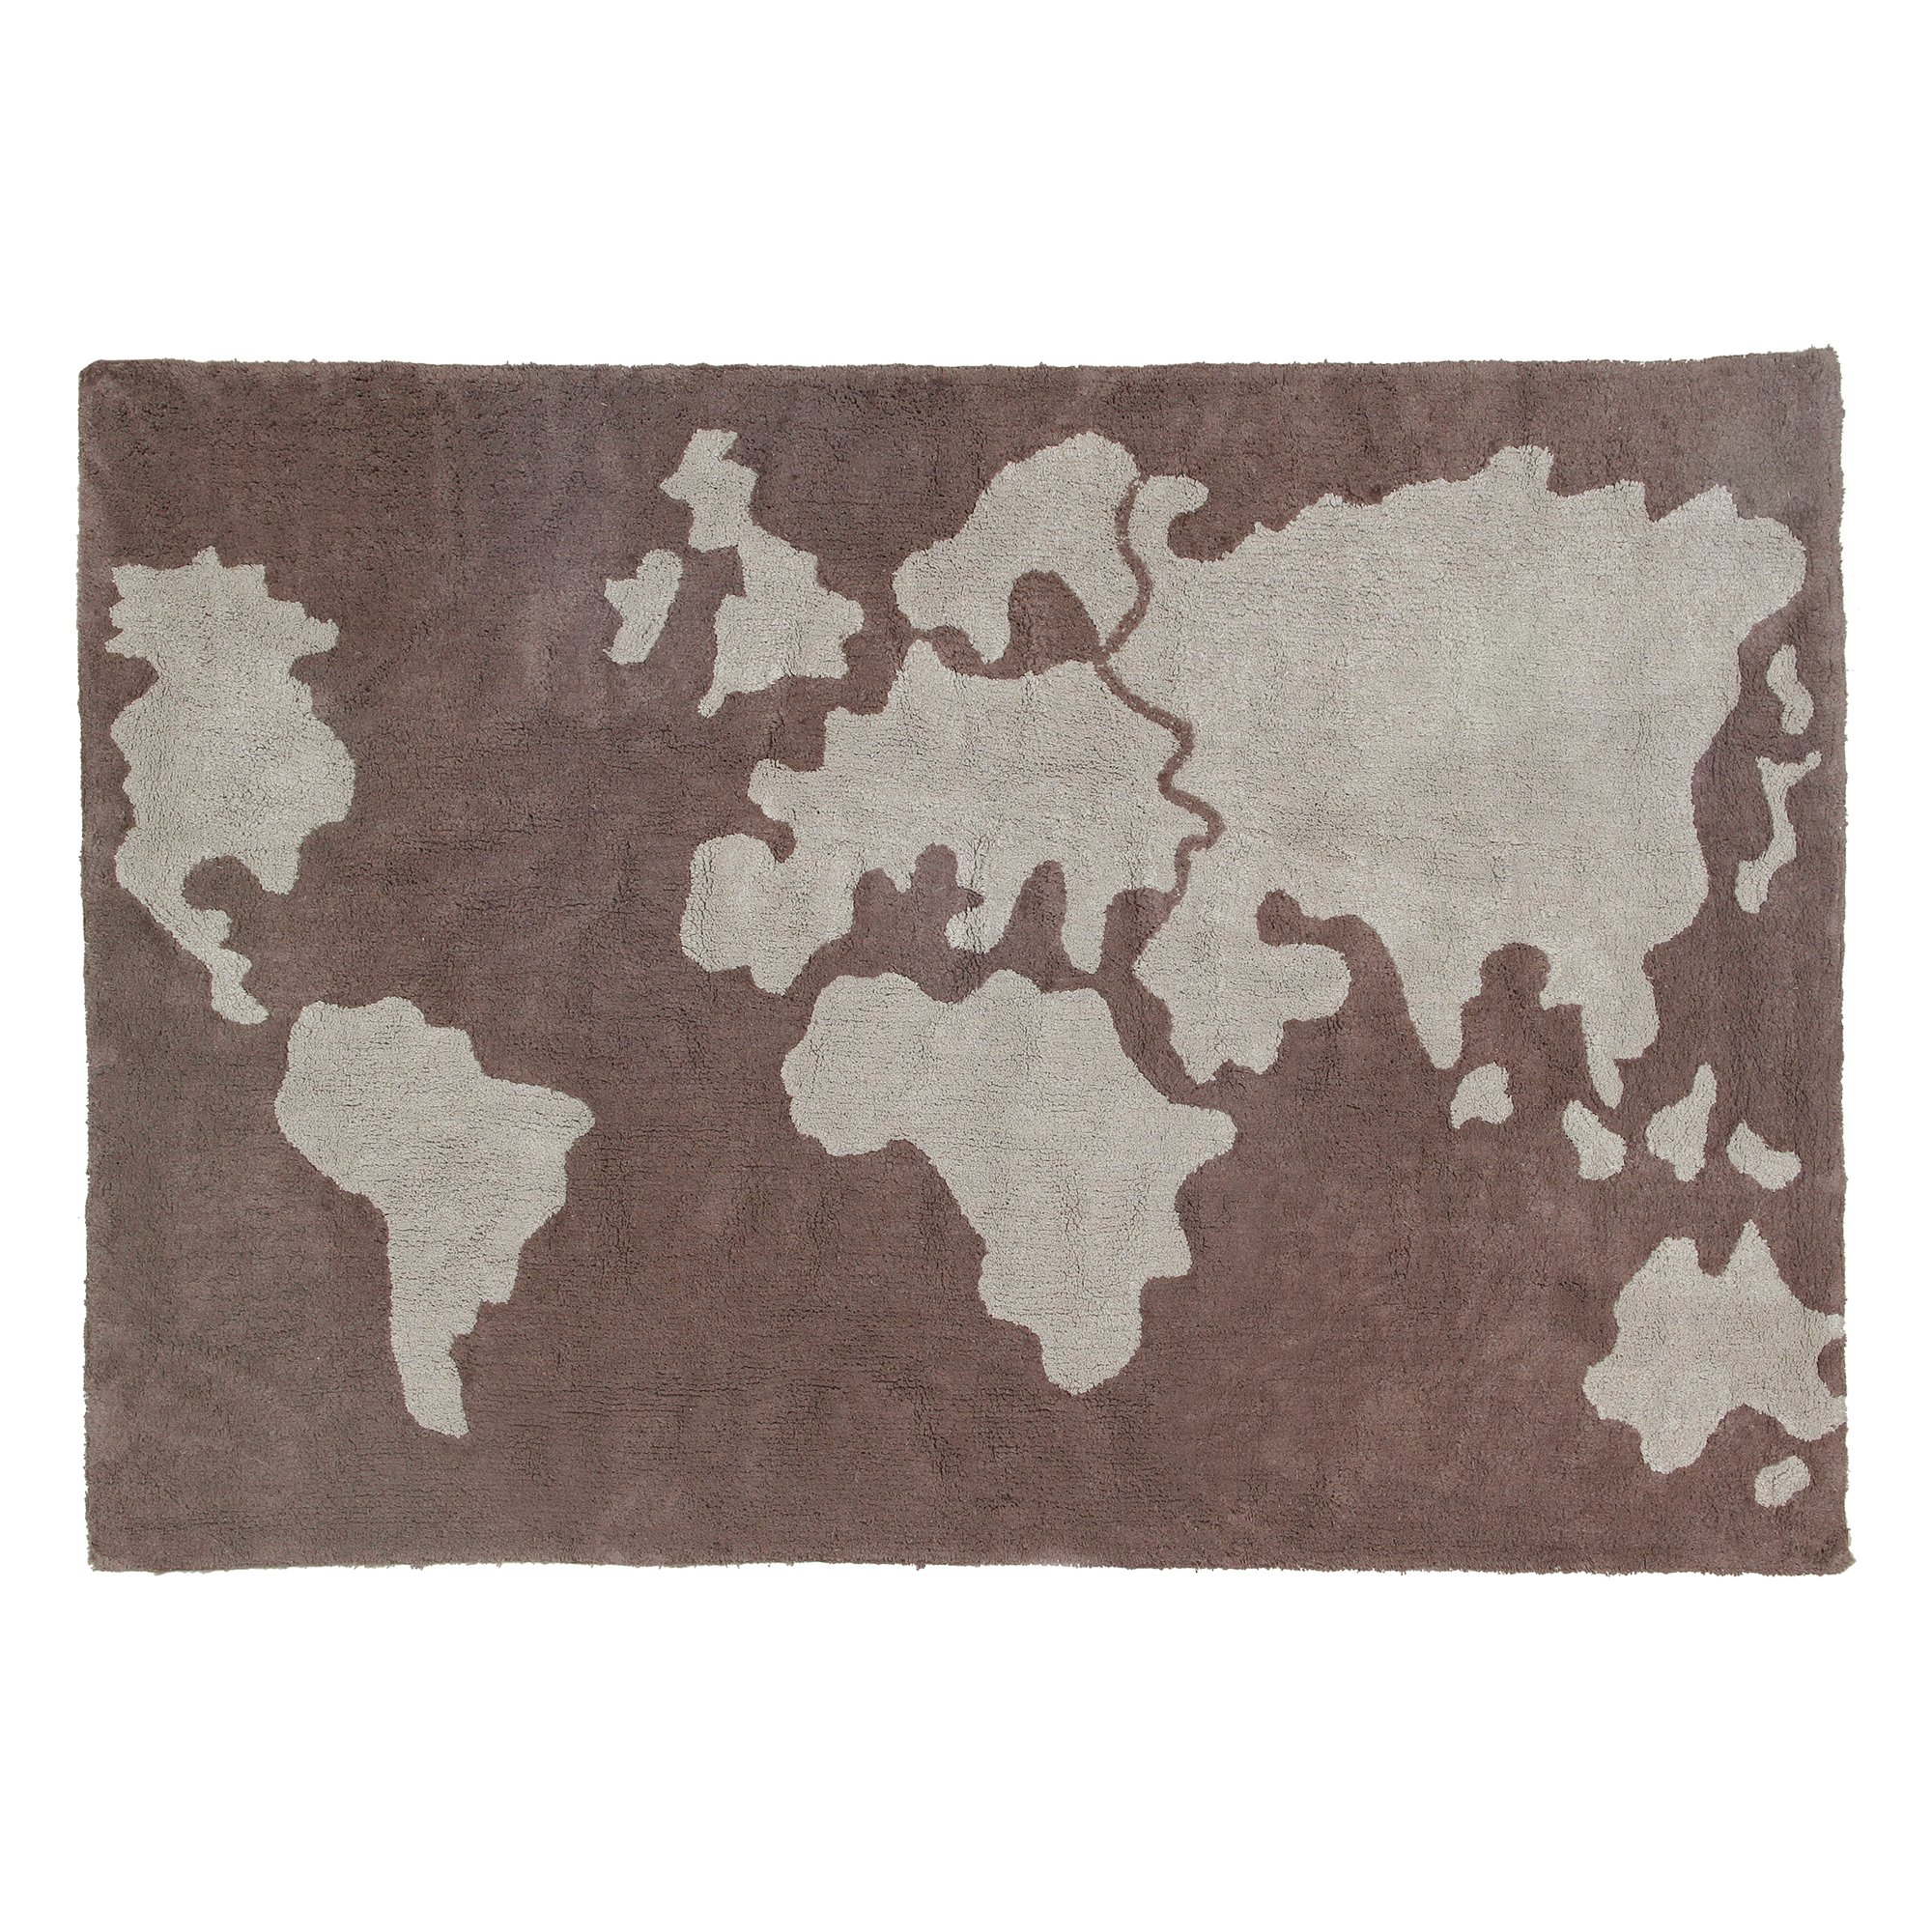 Lorena Canals World Map Washable Children's Rug - Machine Washable, Perfect for the Nursery - Handmade from 100% Natural Cotton and Non-Toxic Dyes